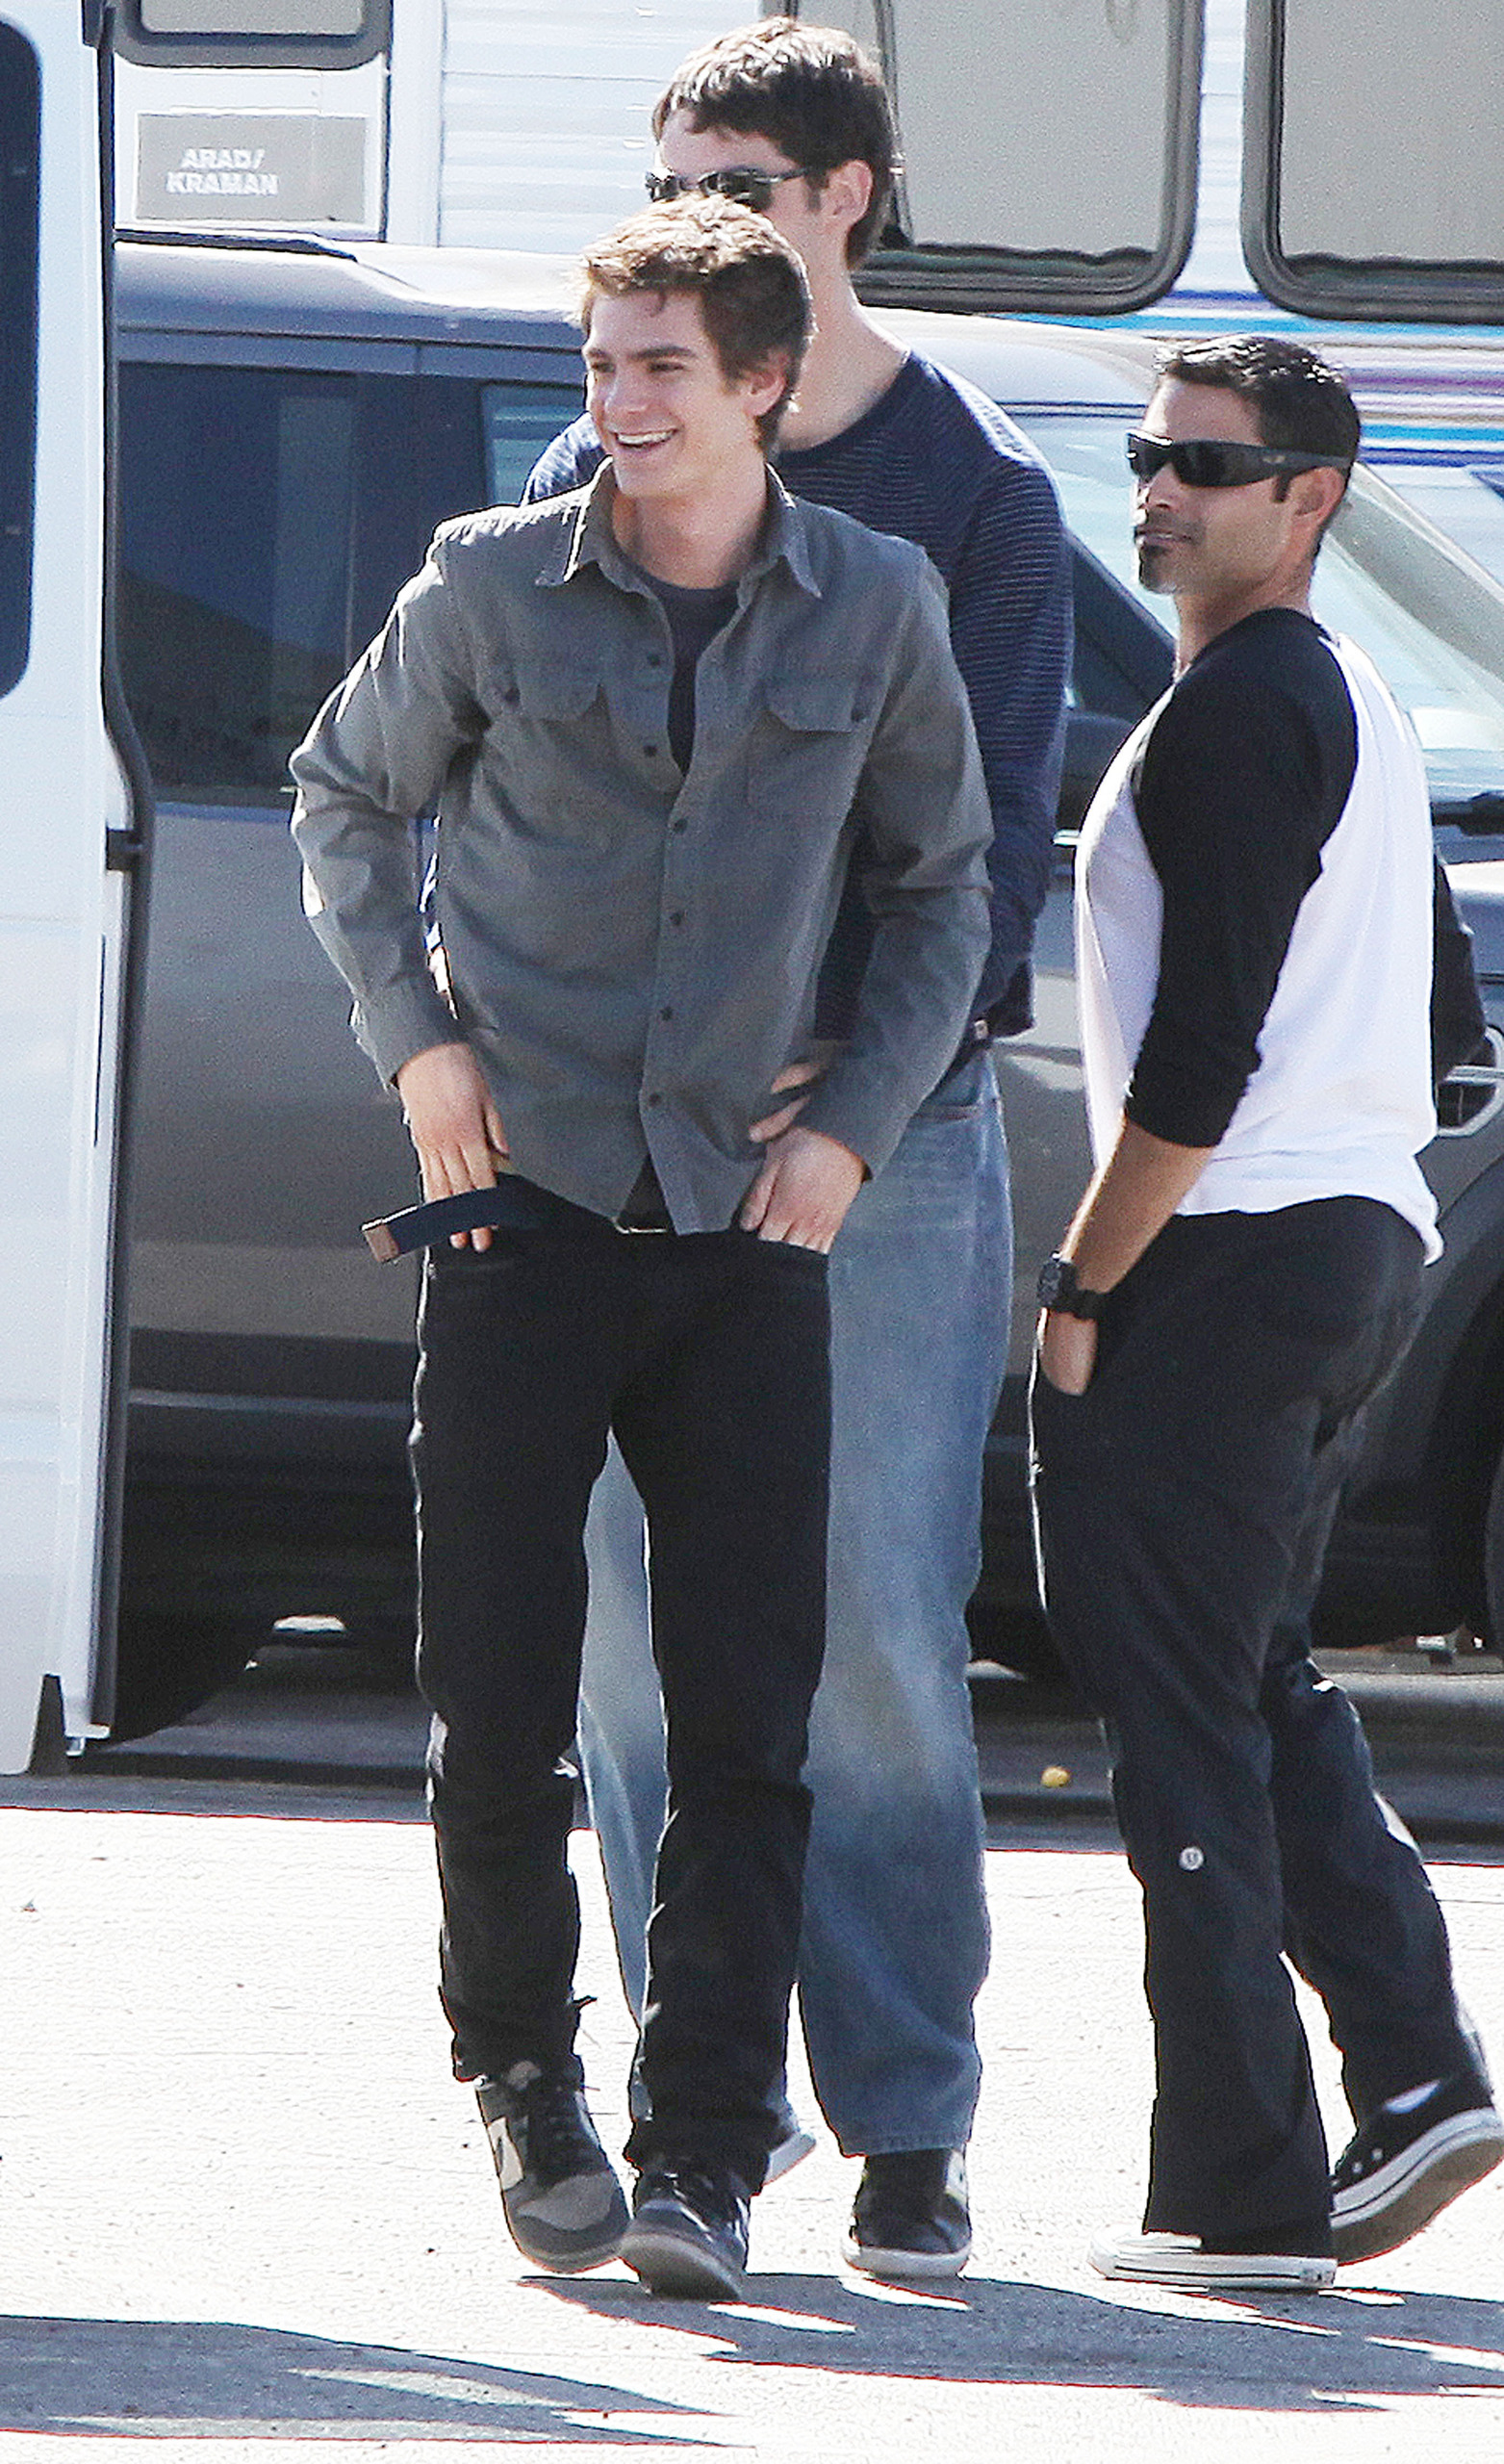 Andrew On Set In LA - February 9th 2011 - Andrew Garfield Photo ...